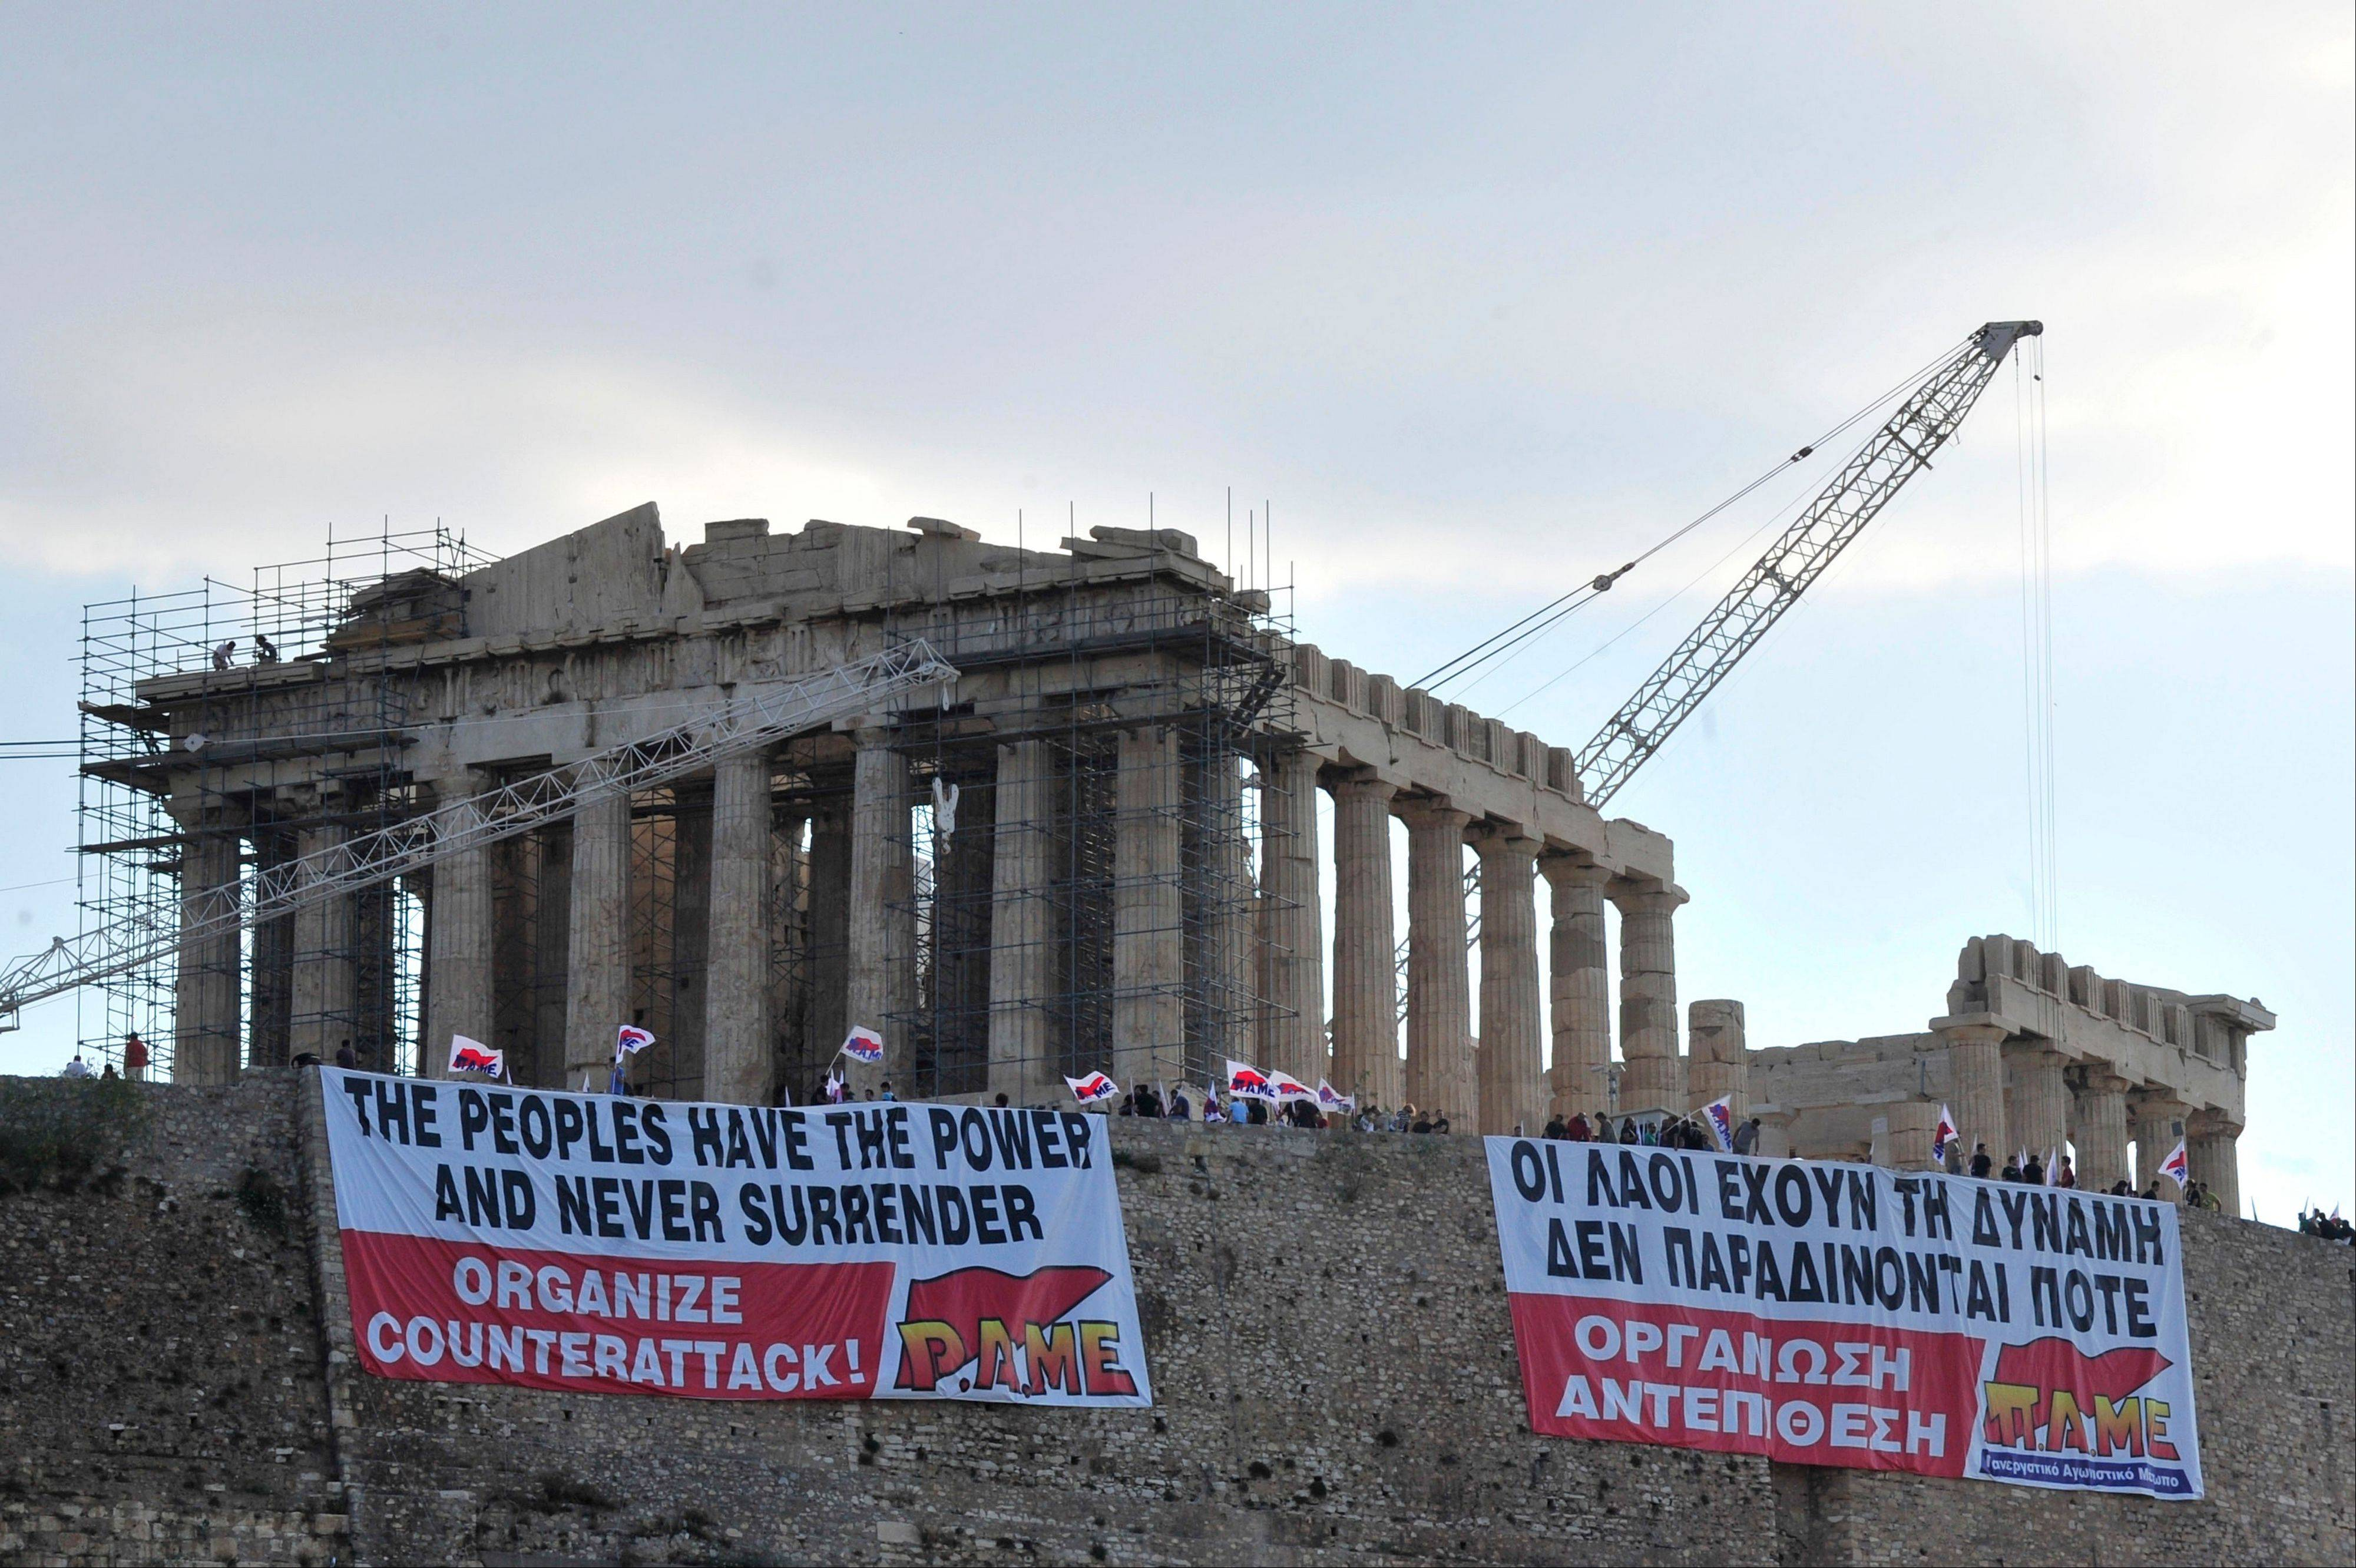 Protesters of a Communist Party-backed union, PAME, hang banners in English and Greek reading: �The peoples have the power and never surrender. Organize counterattack� in front of the Parthenon temple on the Acropolis hill in Athens Monday.